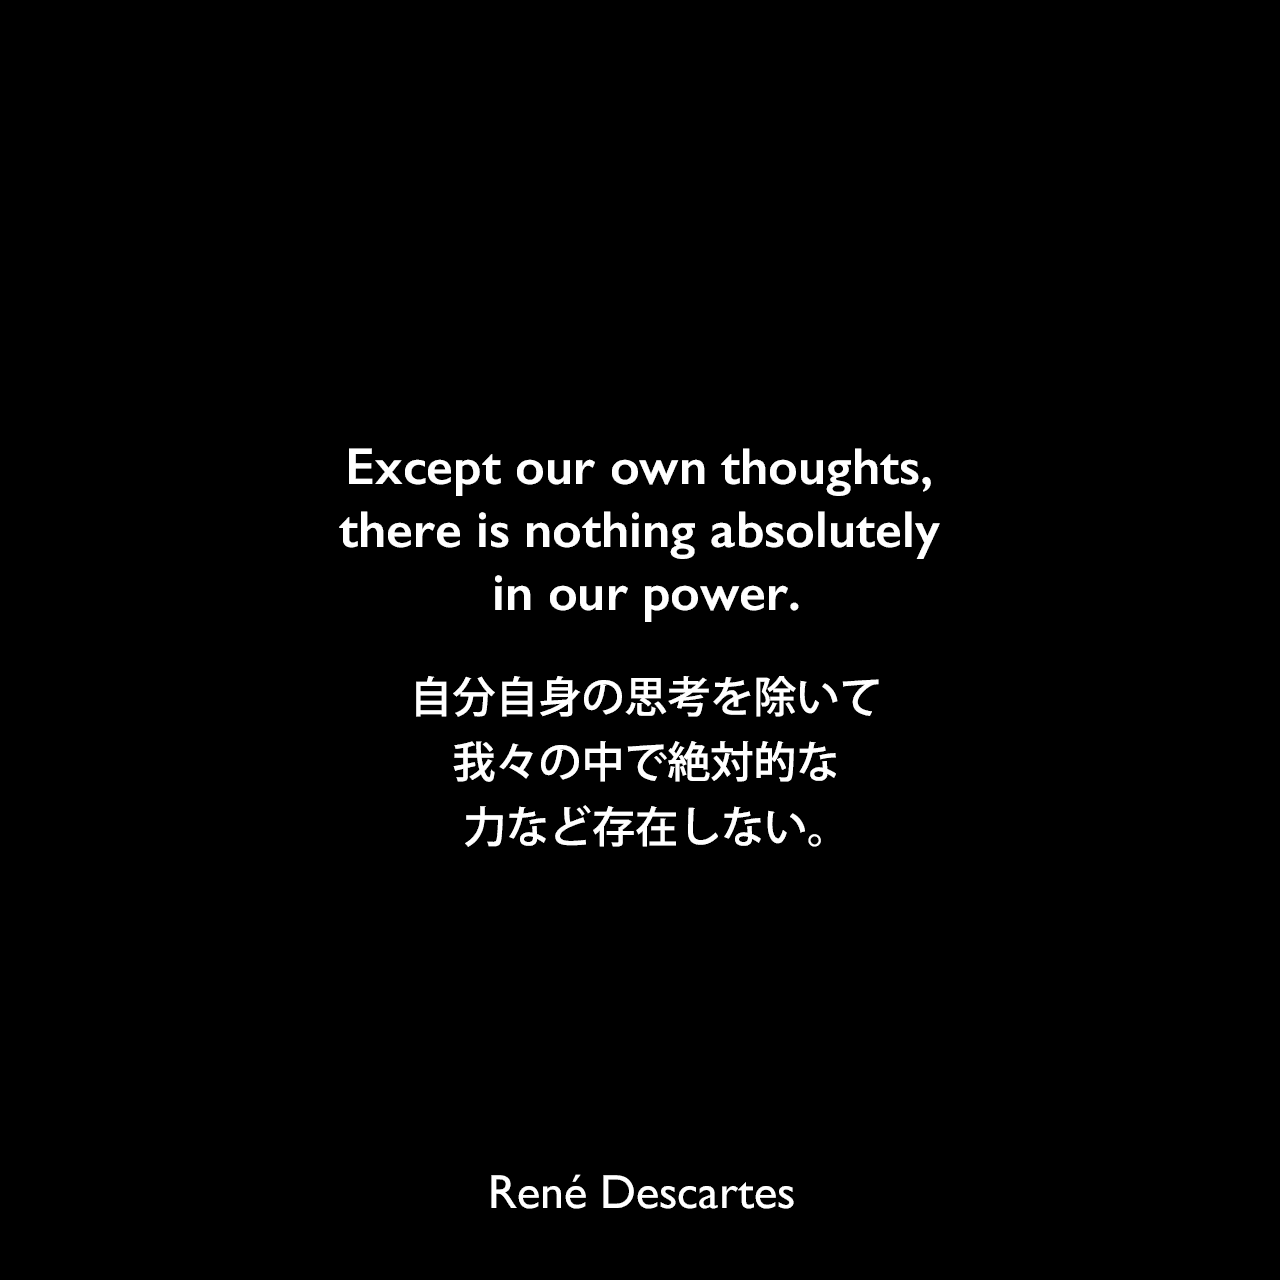 Except our own thoughts, there is nothing absolutely in our power.自分自身の思考を除いて、我々の中で絶対的な力など存在しない。René Descartes